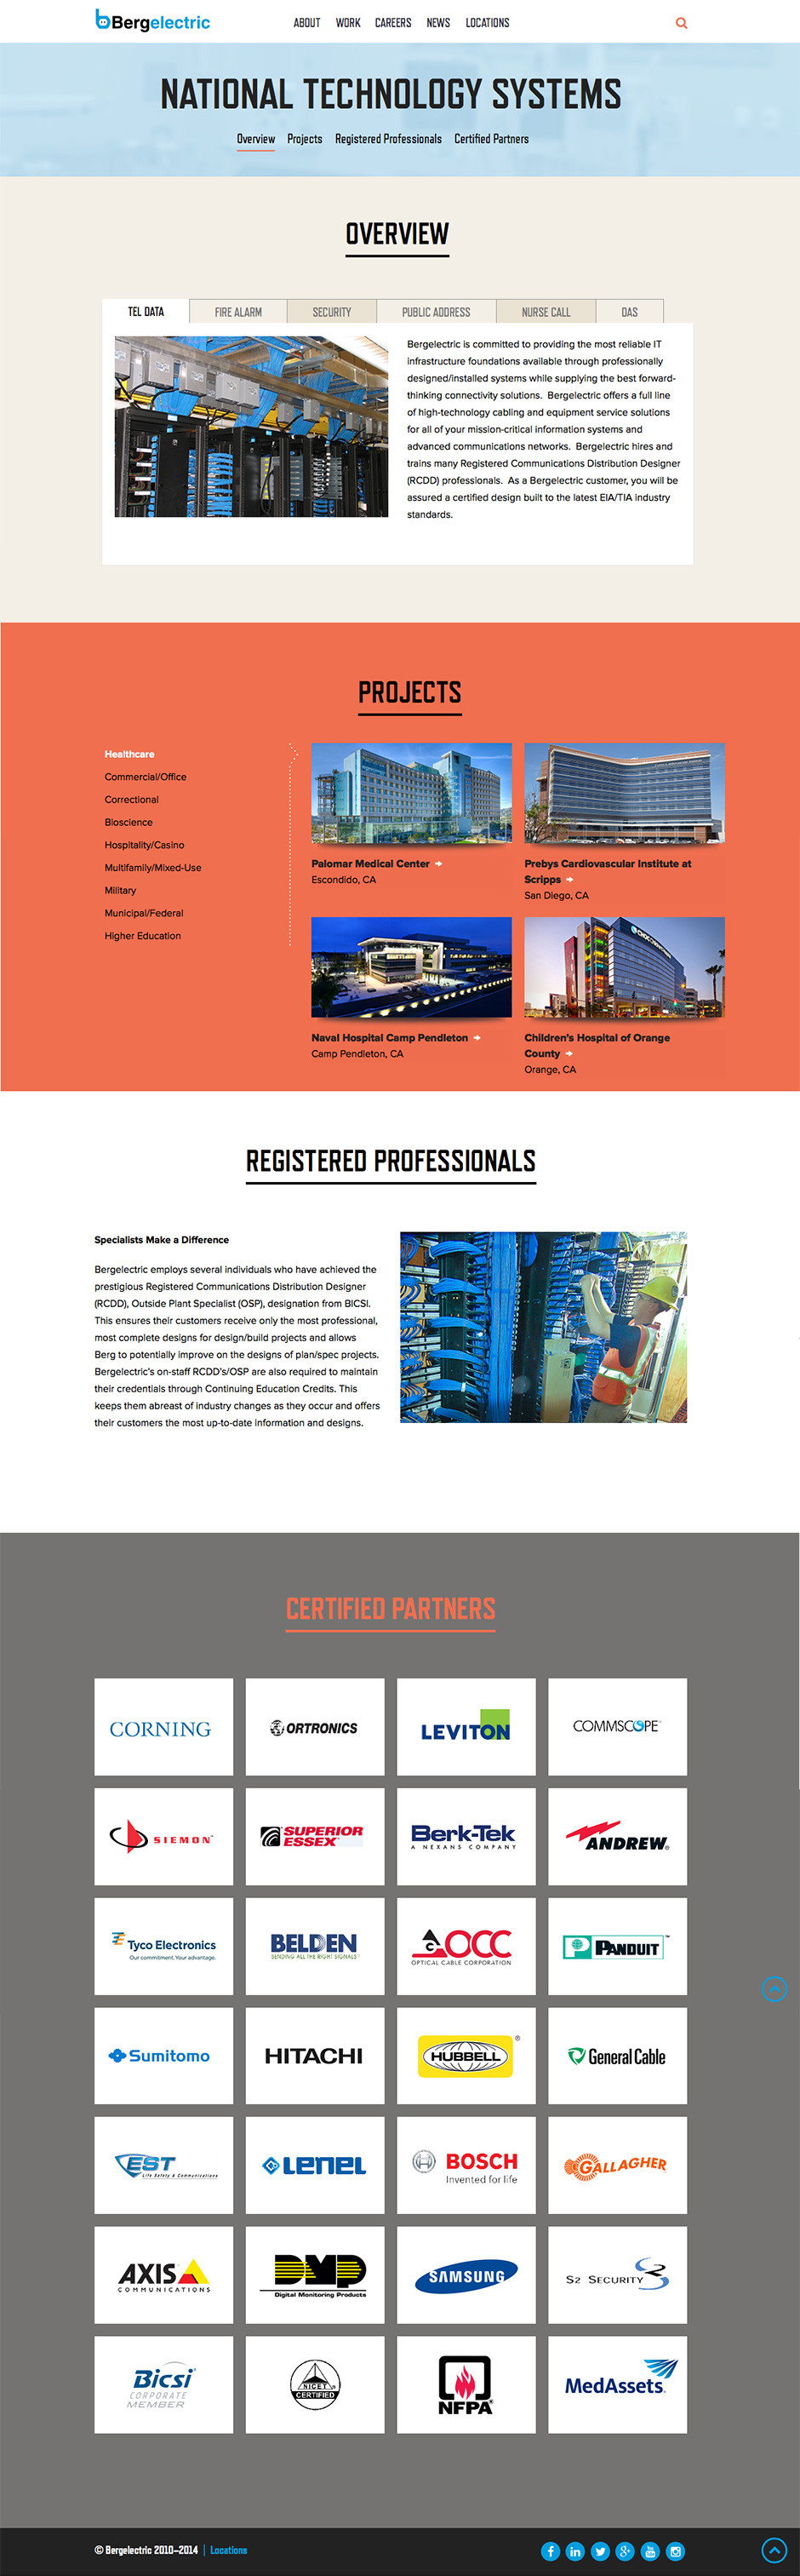 Bergelectric National Technology Systems Page